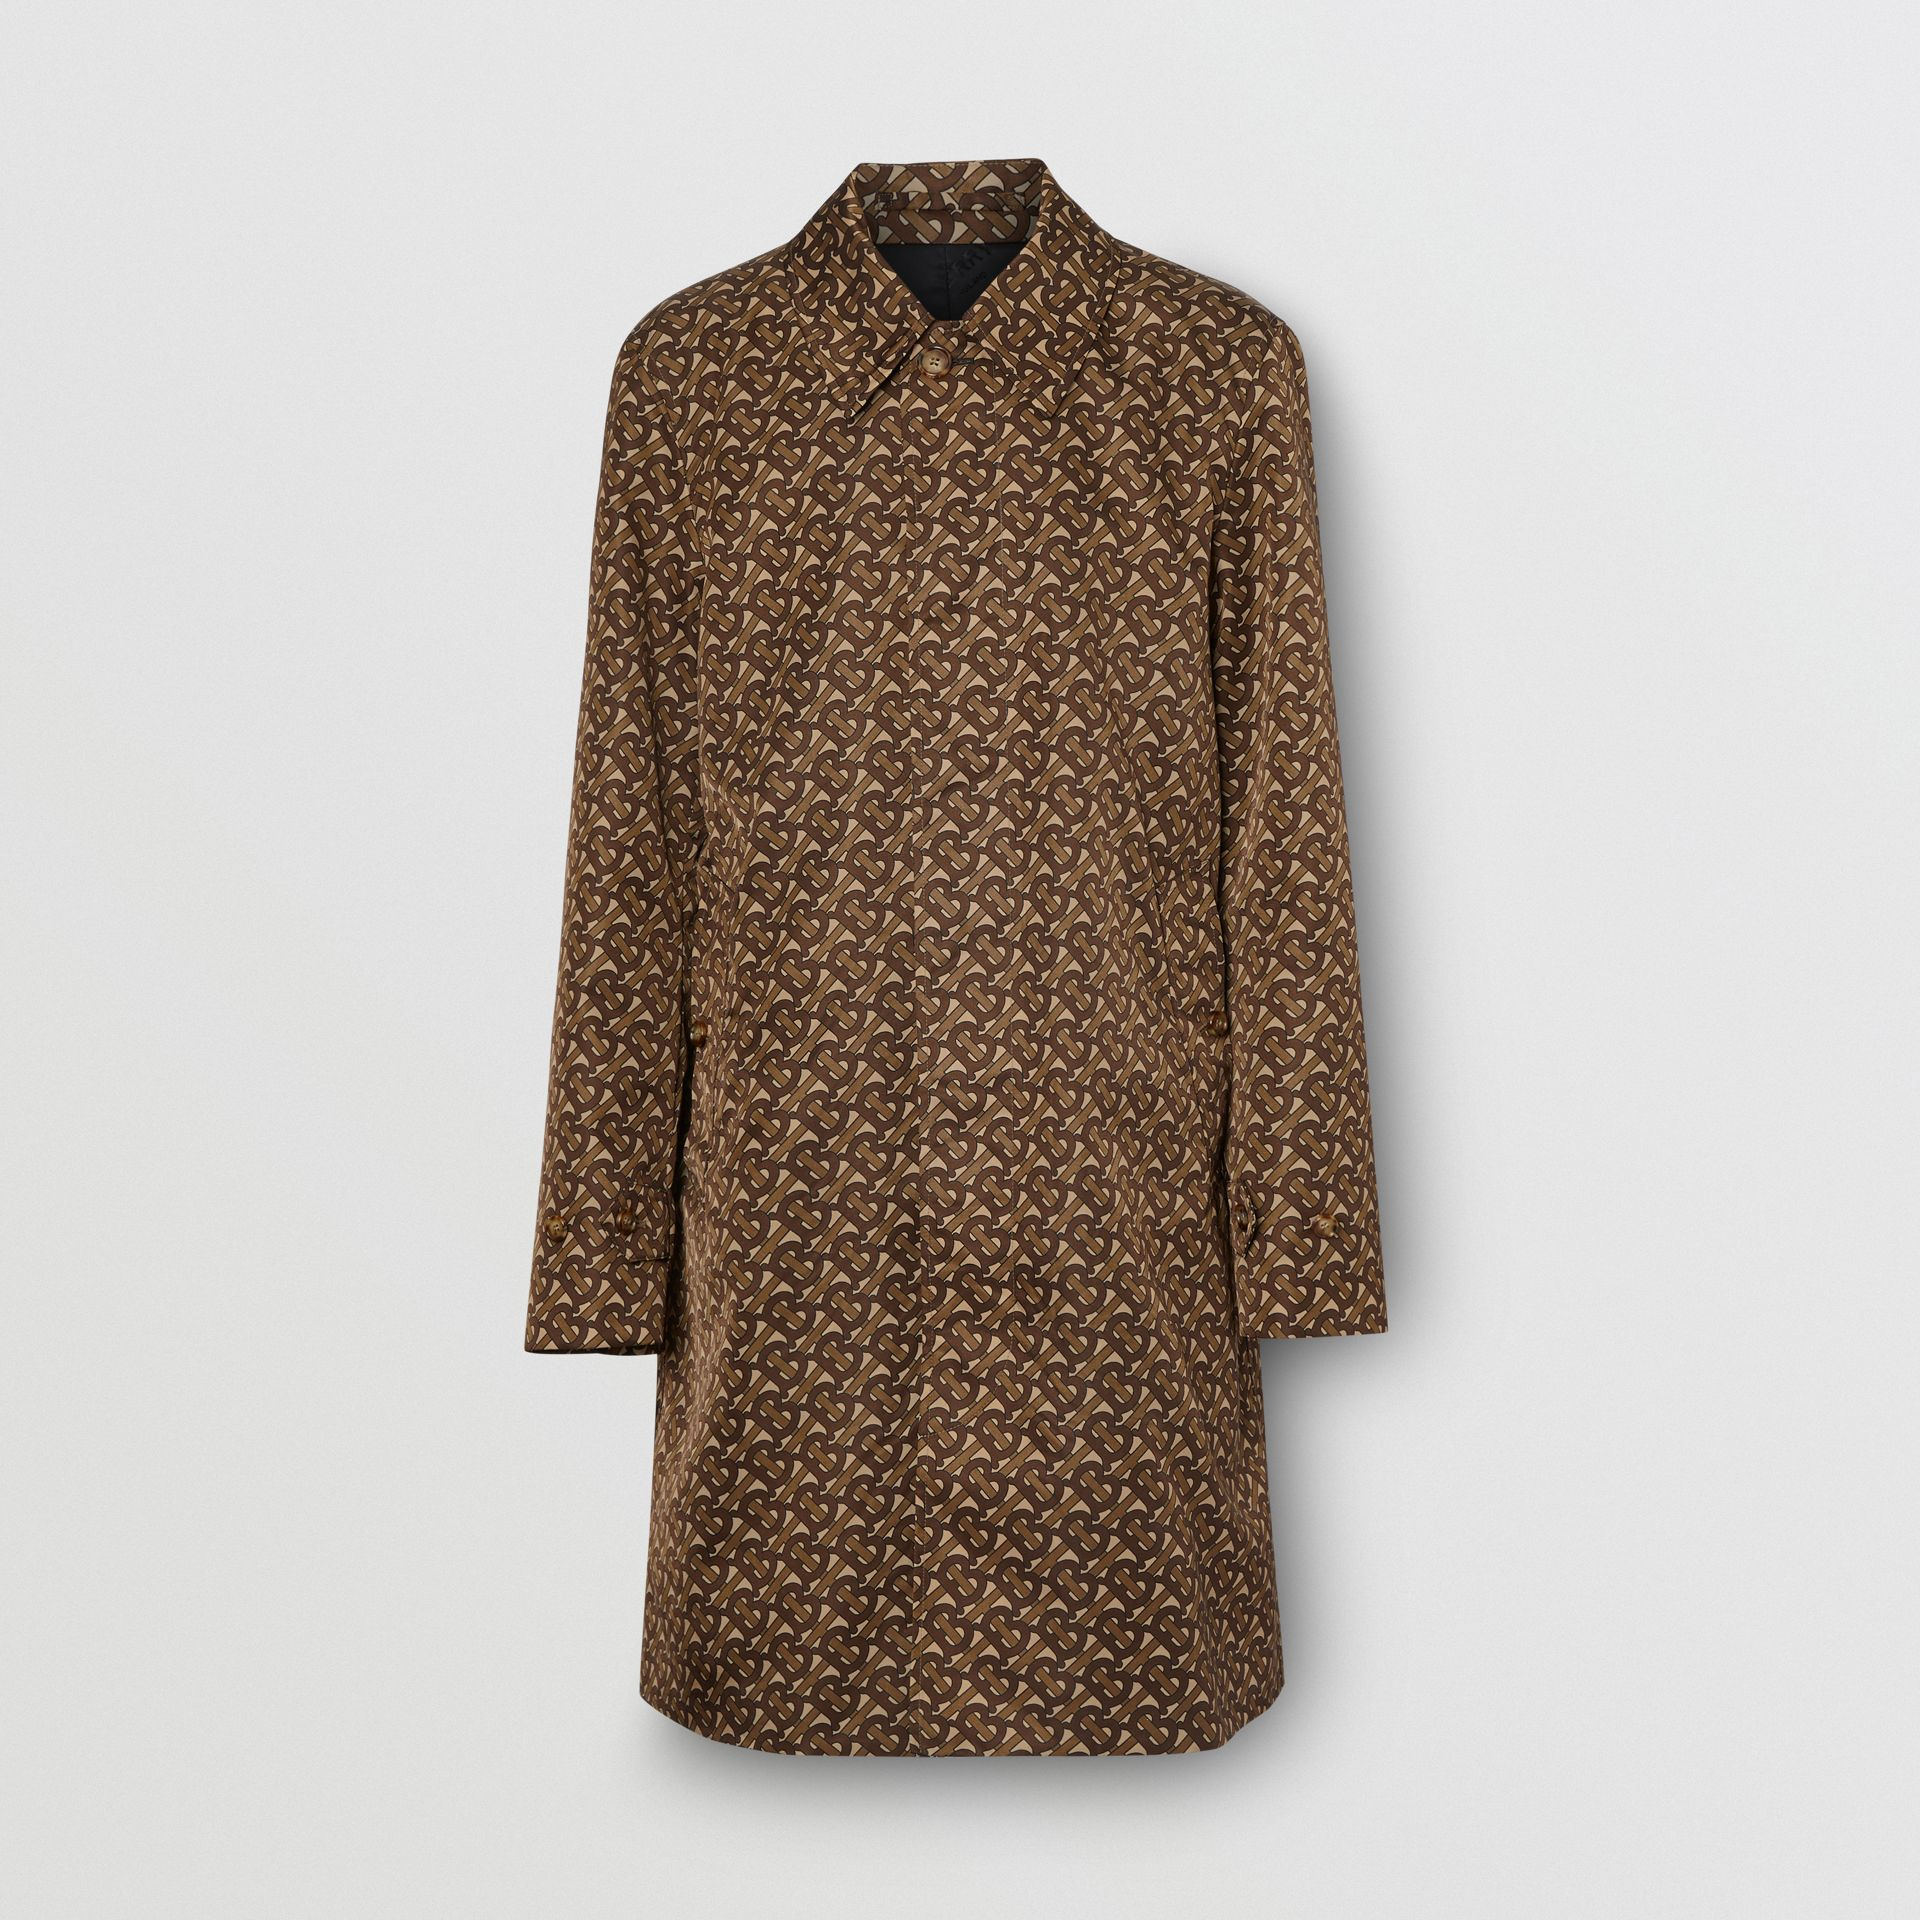 Monogram Stripe Print Nylon Car Coat in Bridle Brown - Men | Burberry Australia - gallery image 3